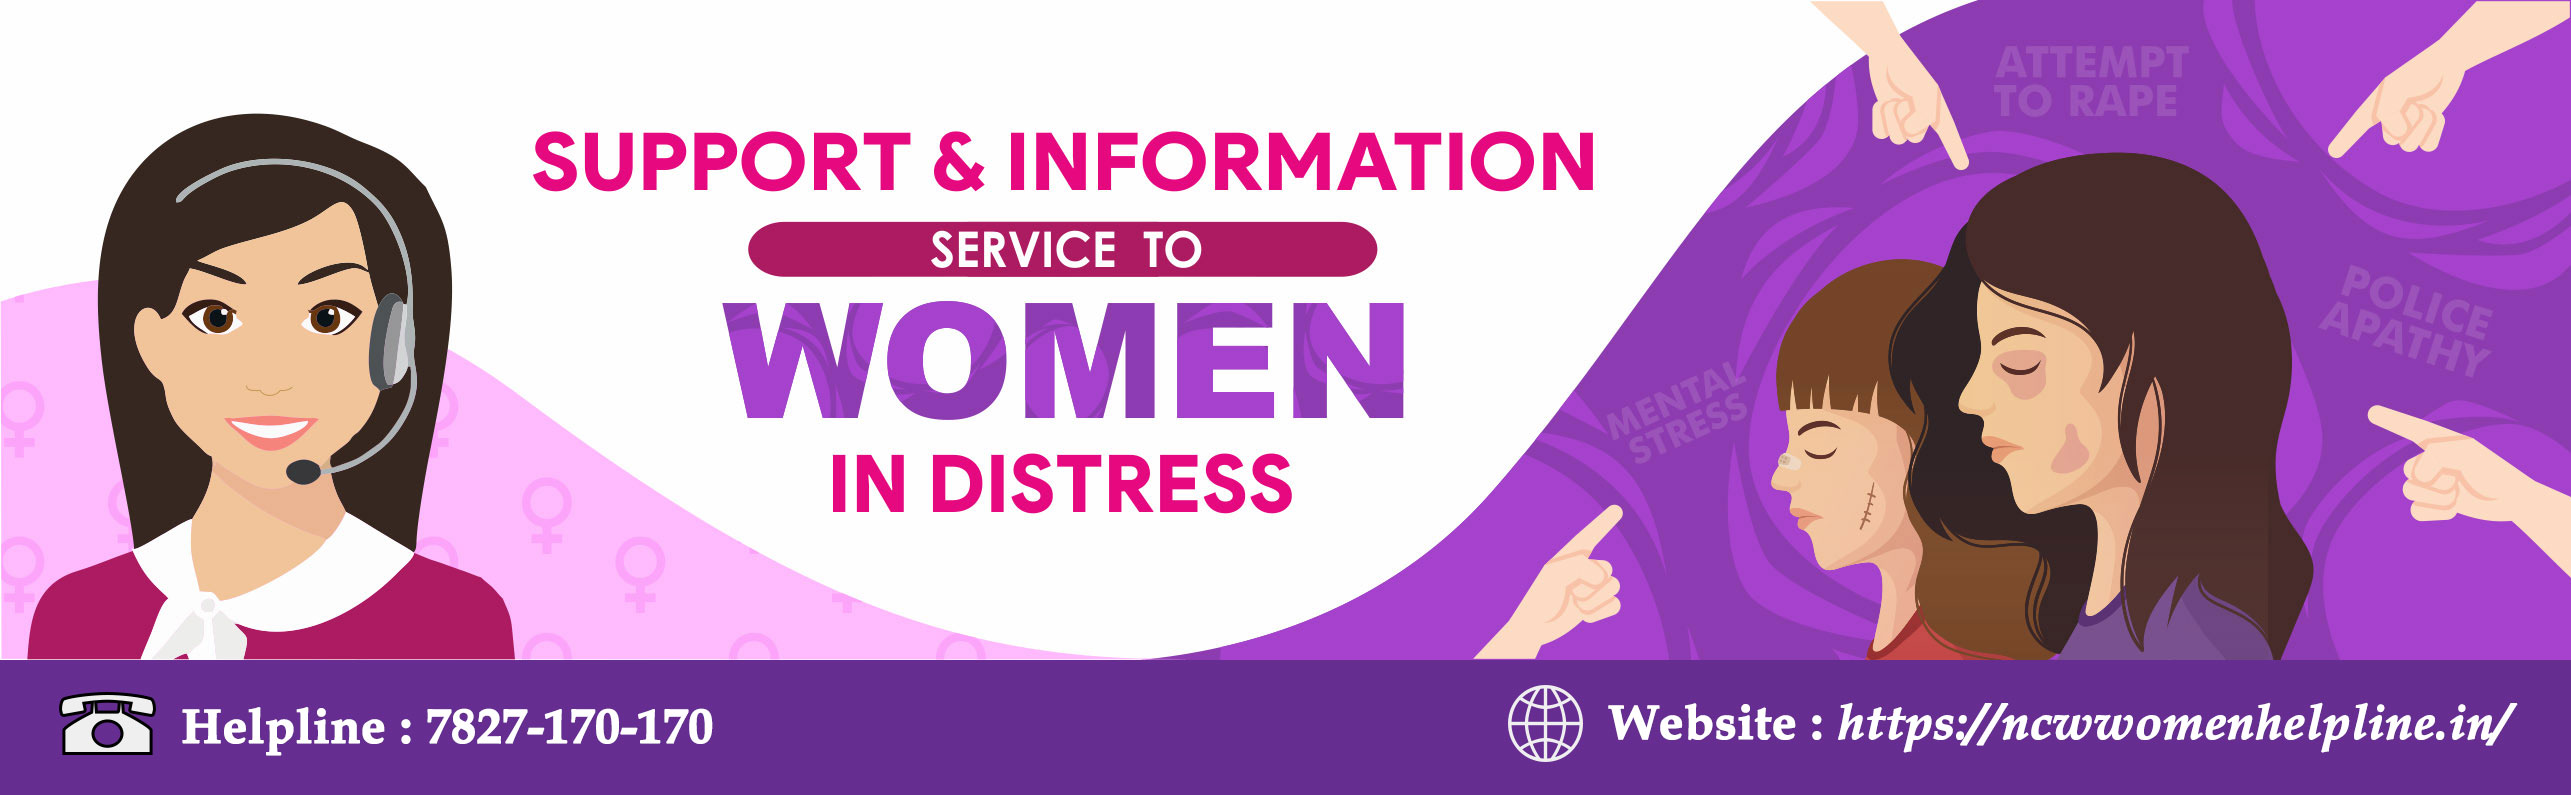 Support and Information service to woman in distress